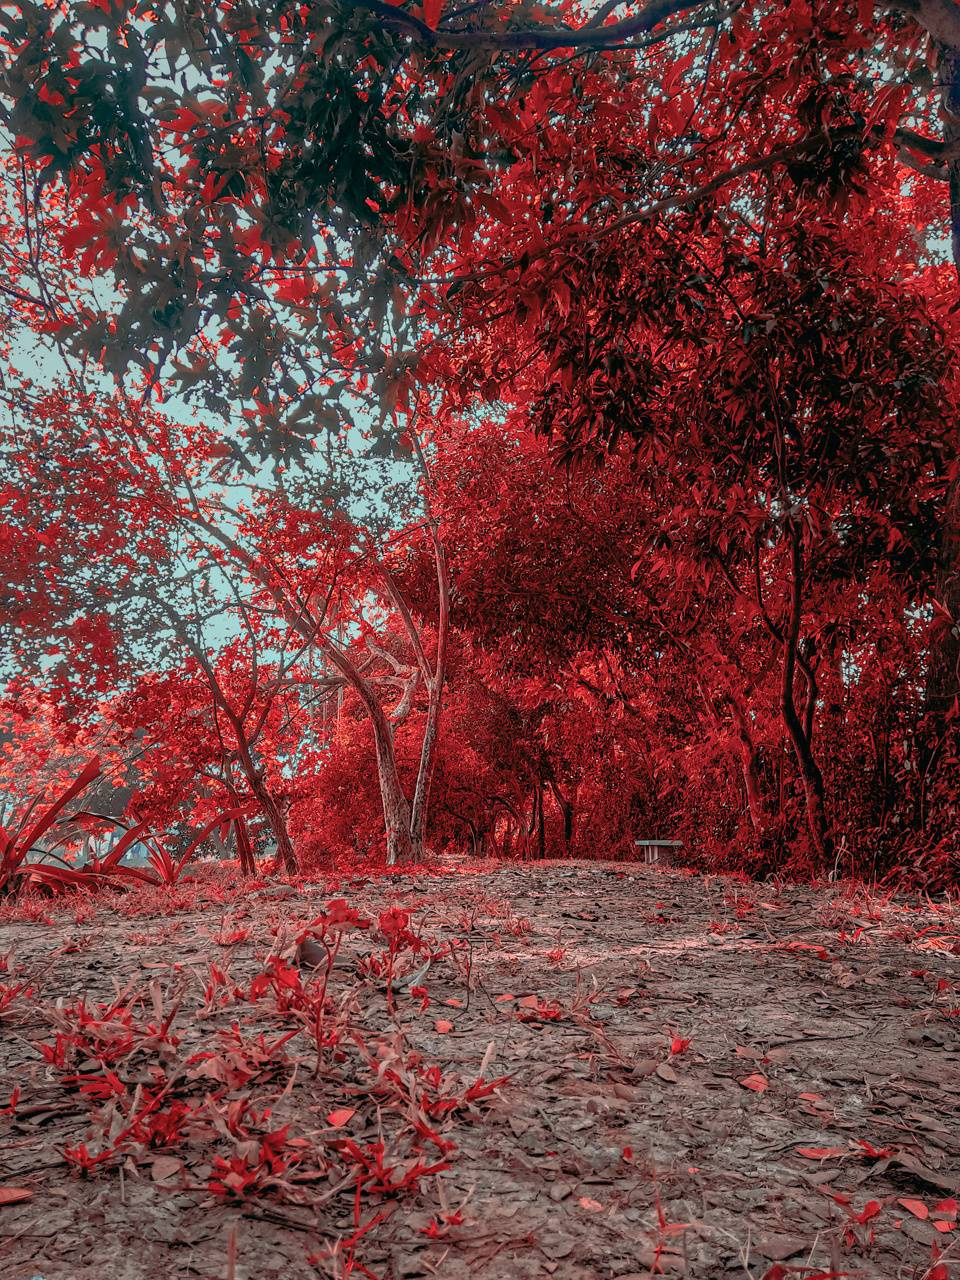 Red tress